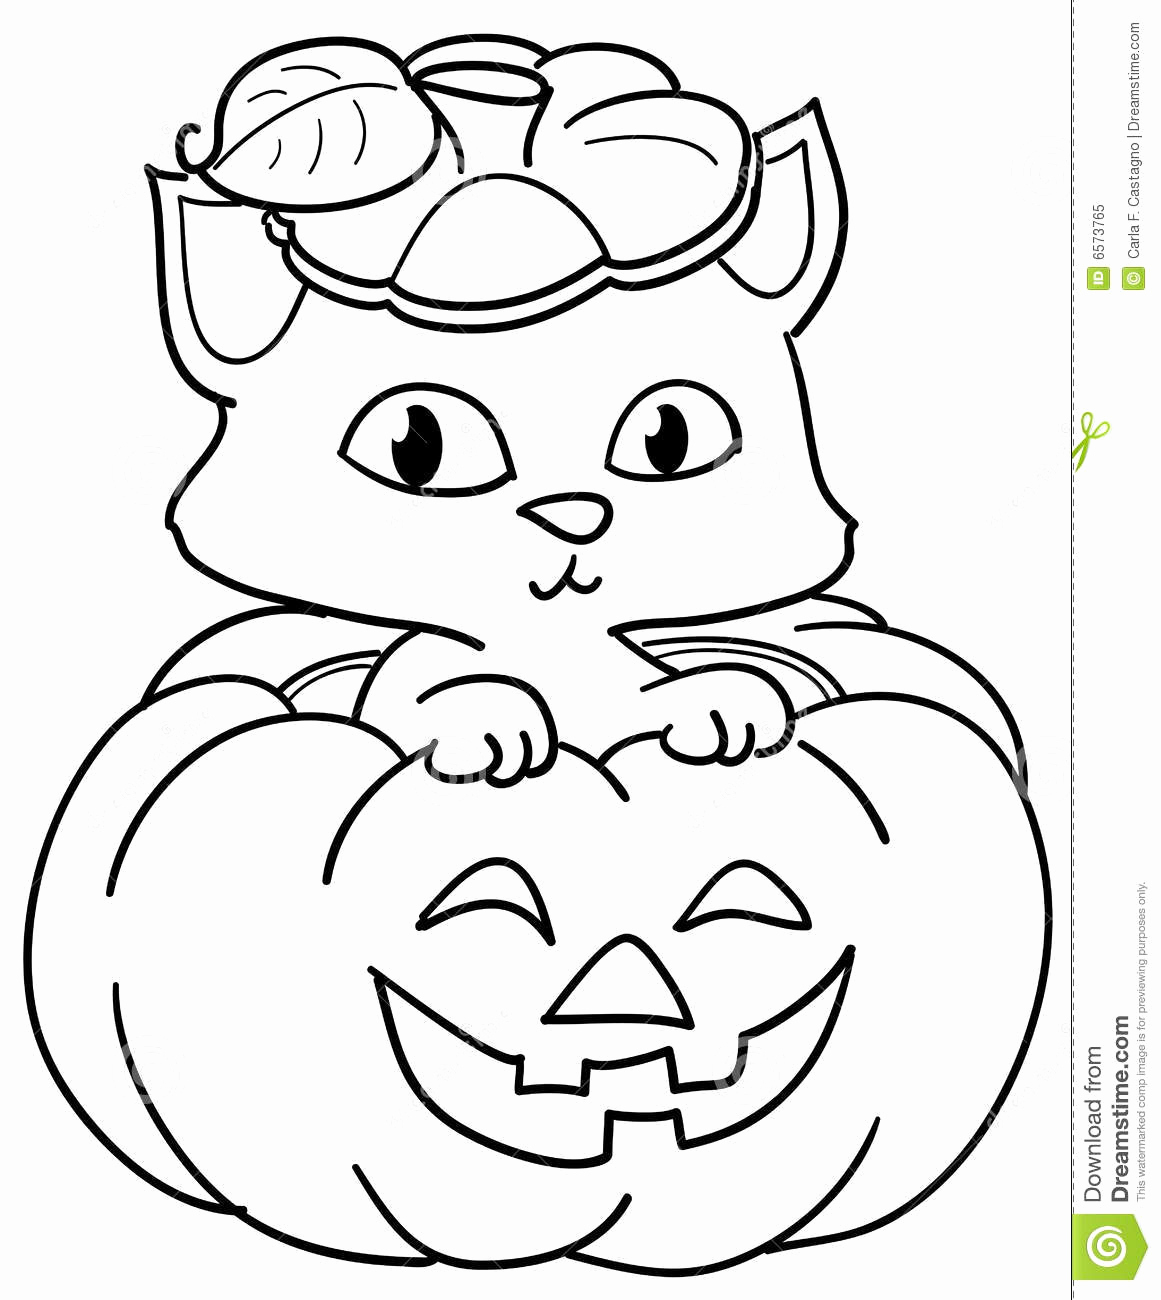 - Free Halloween Coloring Pages Azspringtrainingexperience